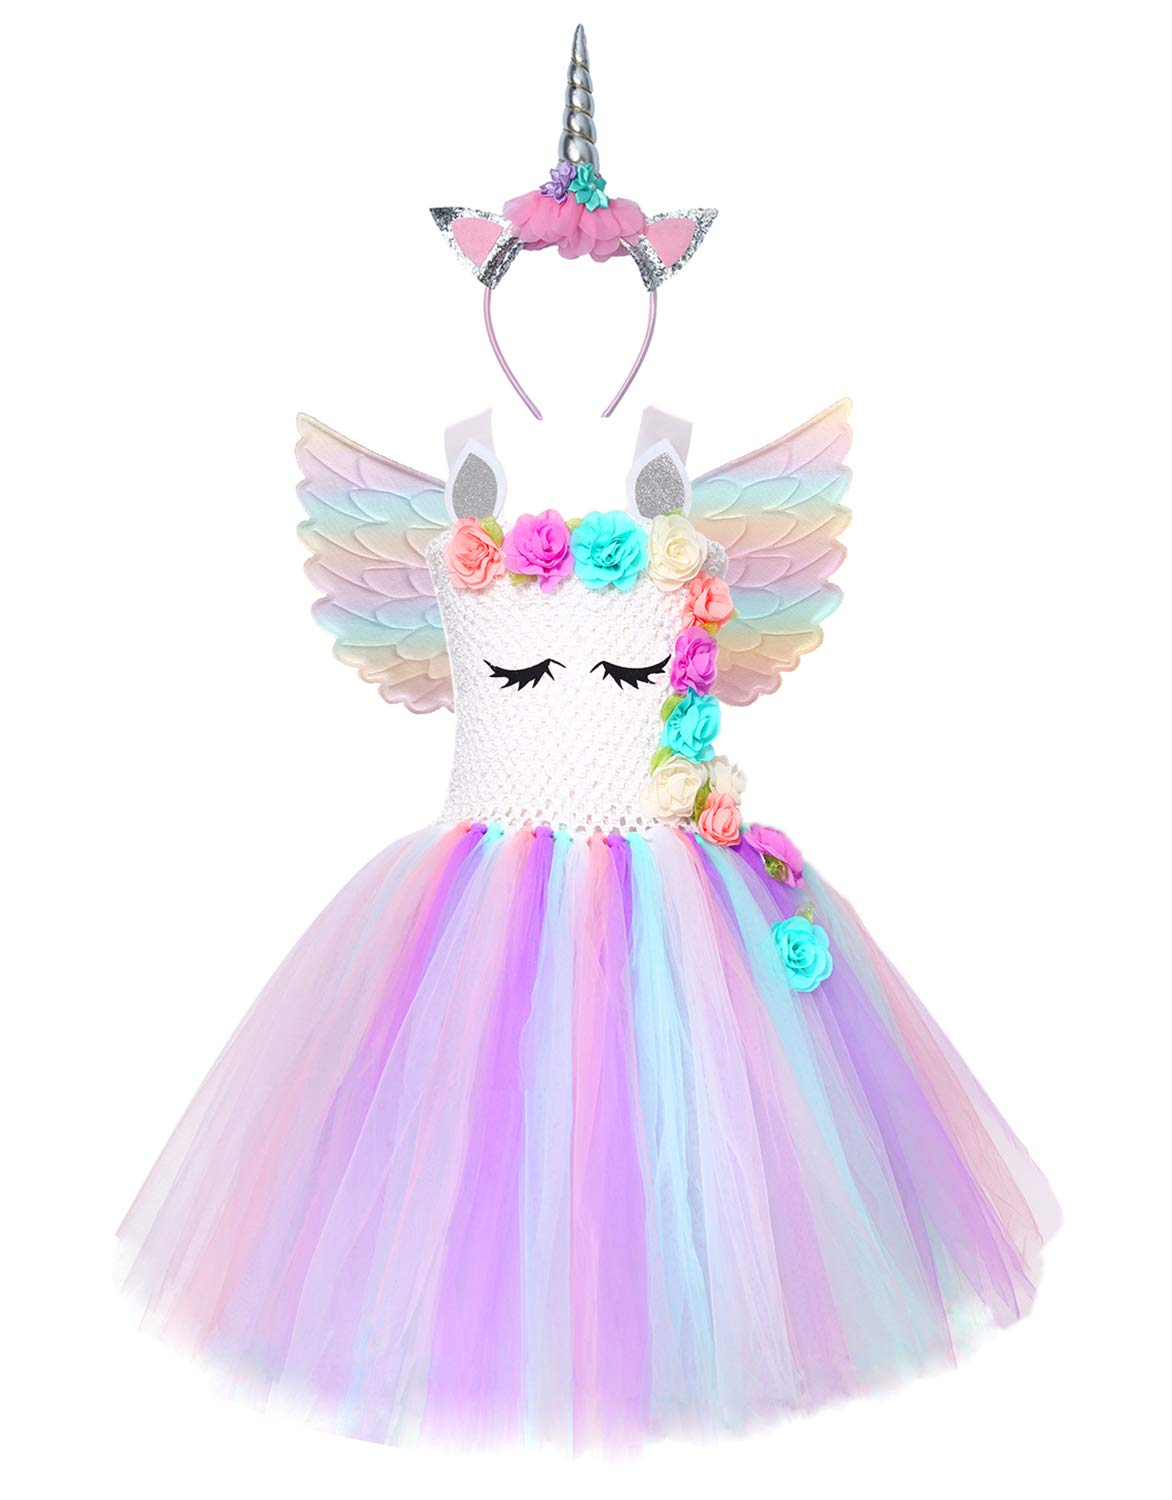 Cuteshower Girl Unicorn Costume, Baby Unicorn Tutu Dress Outfit Princess Party Costumes with Headband and Wings (5-6 Years, White) by Cuteshower